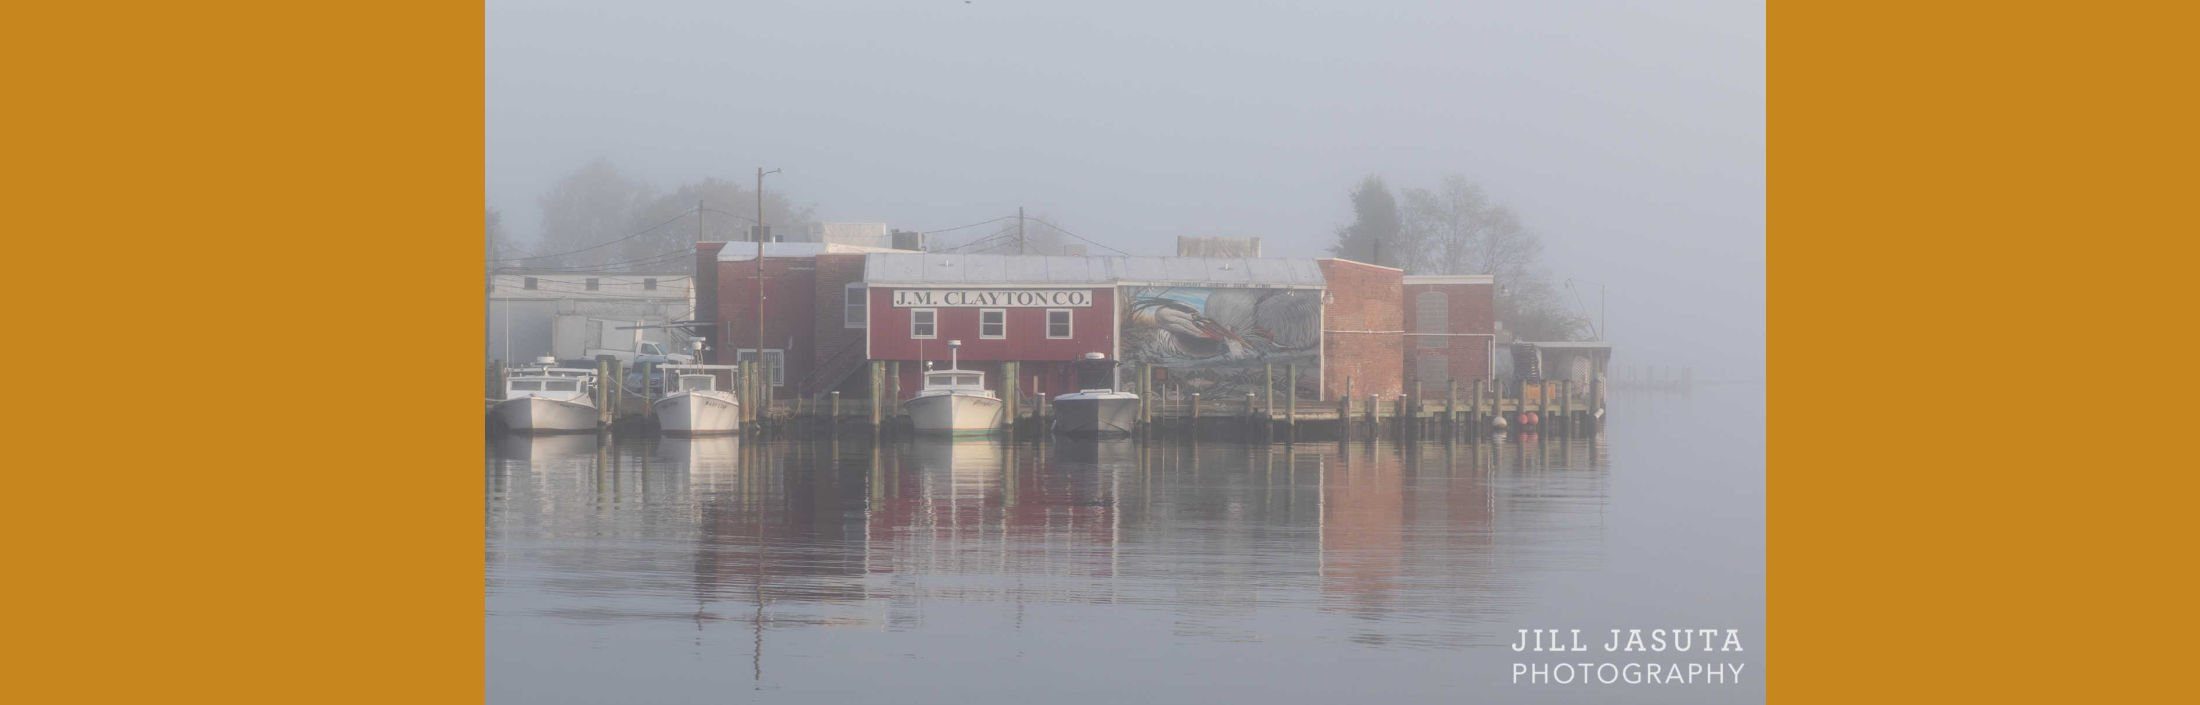 PICTURE THIS: On Cambridge Creek, the Oldest Crabpacking Plant in the World